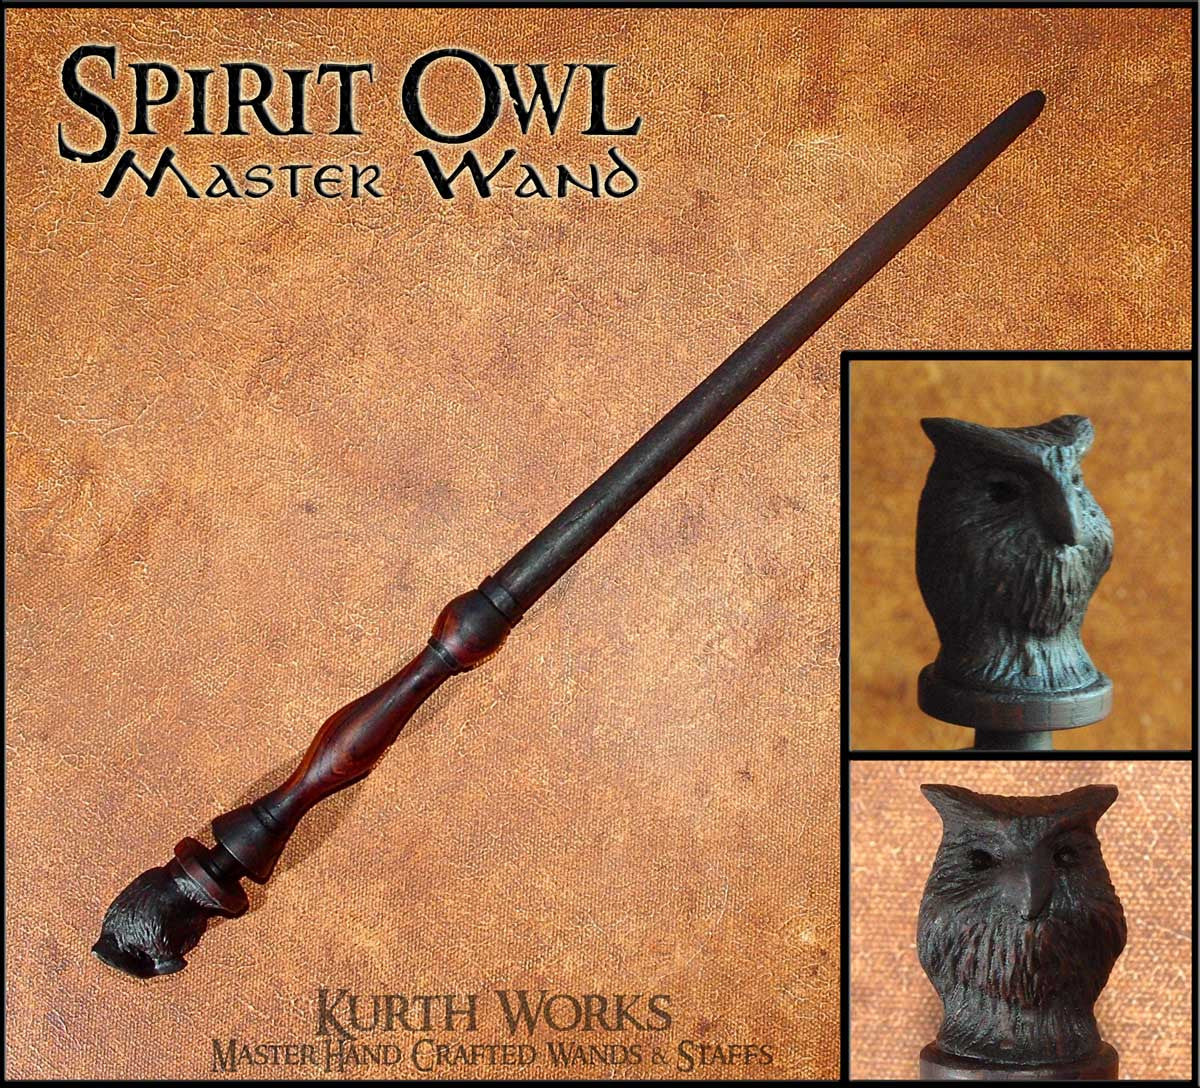 Spirit Owl Wizard Magic Wand